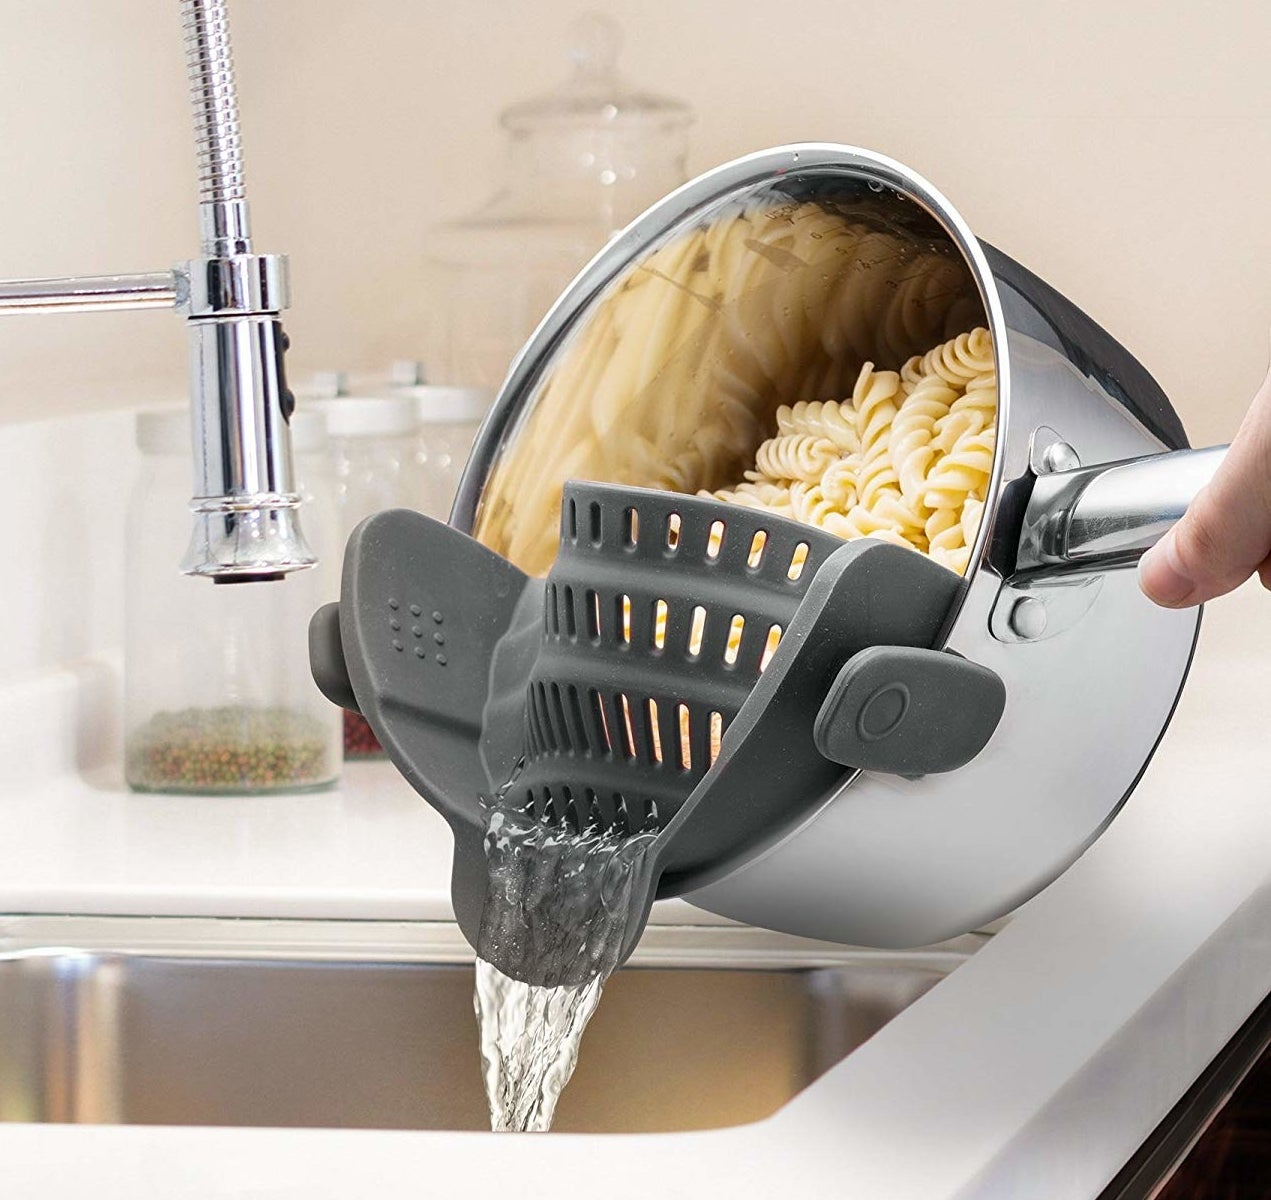 The strainer attached to a pot, which allows the water to drain while keeping pasta in place